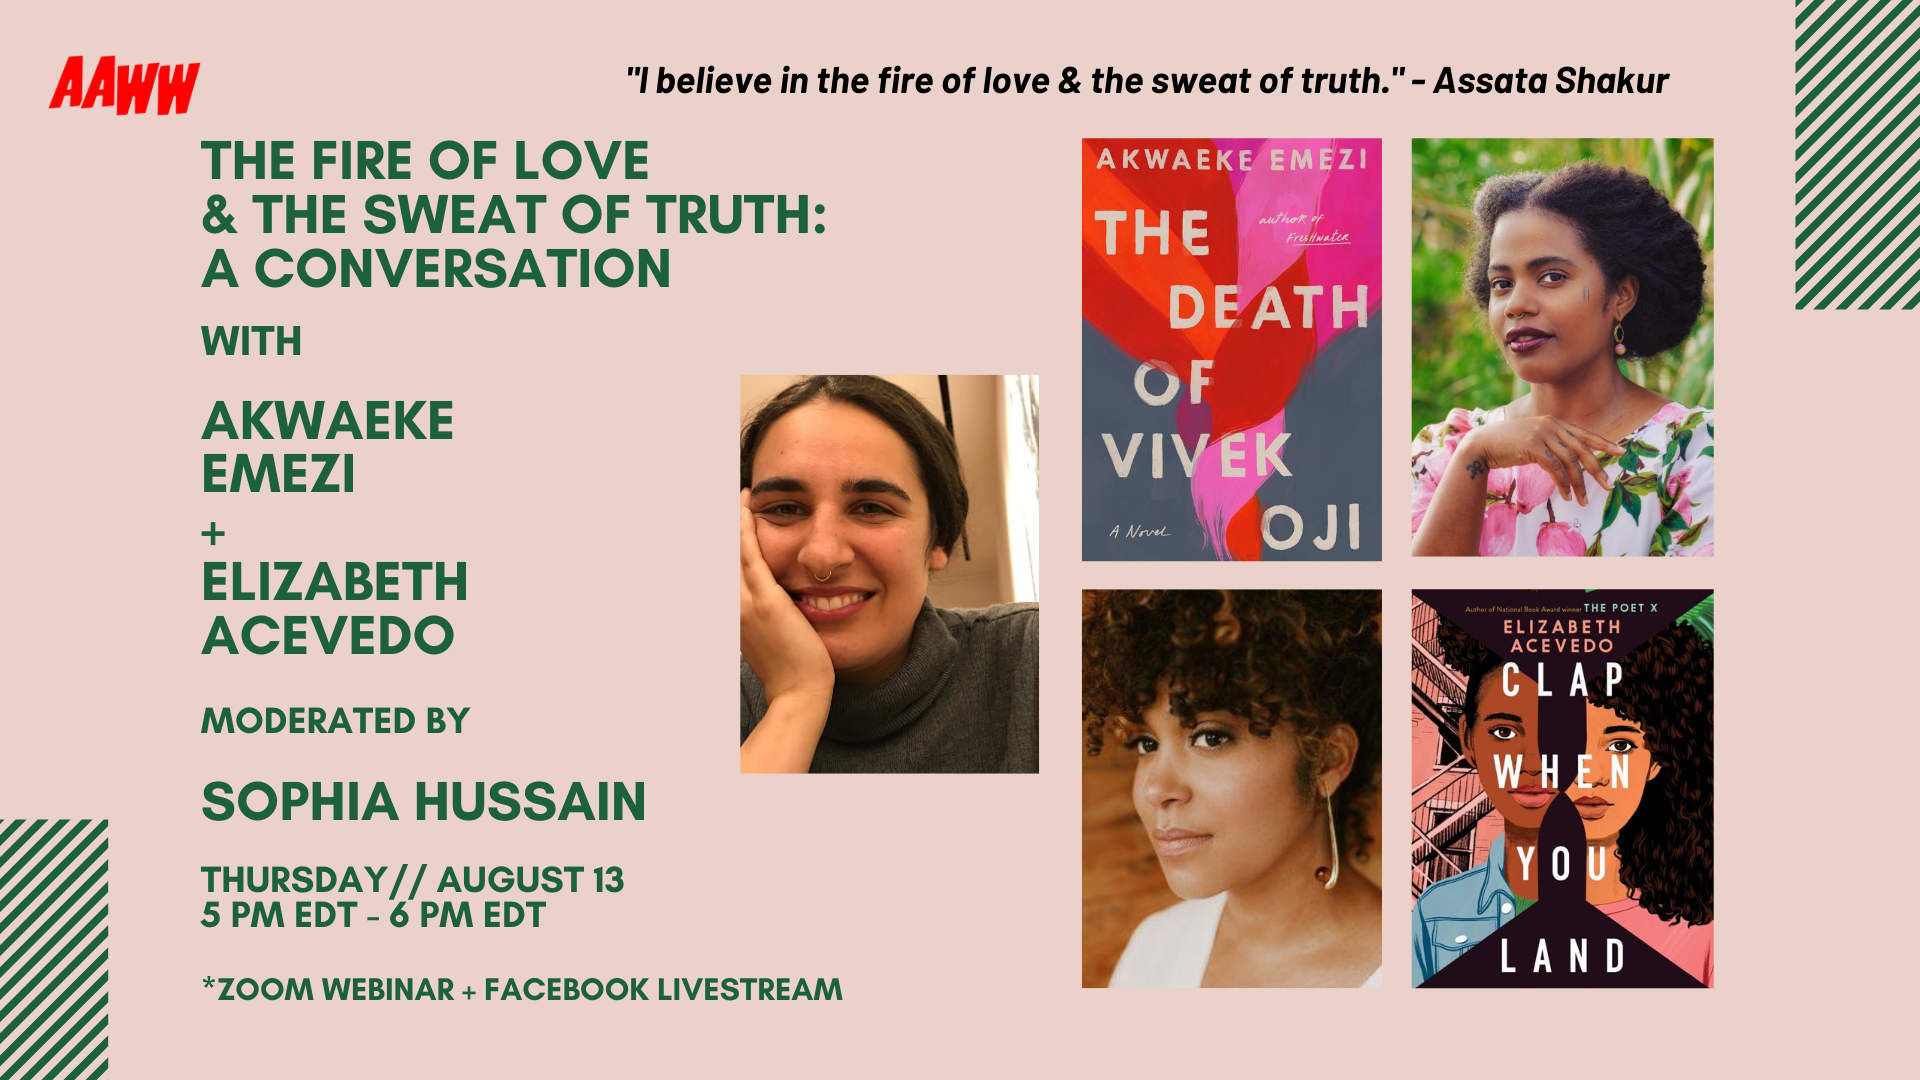 The Fire of Love & the Sweat of Truth: A Conversation